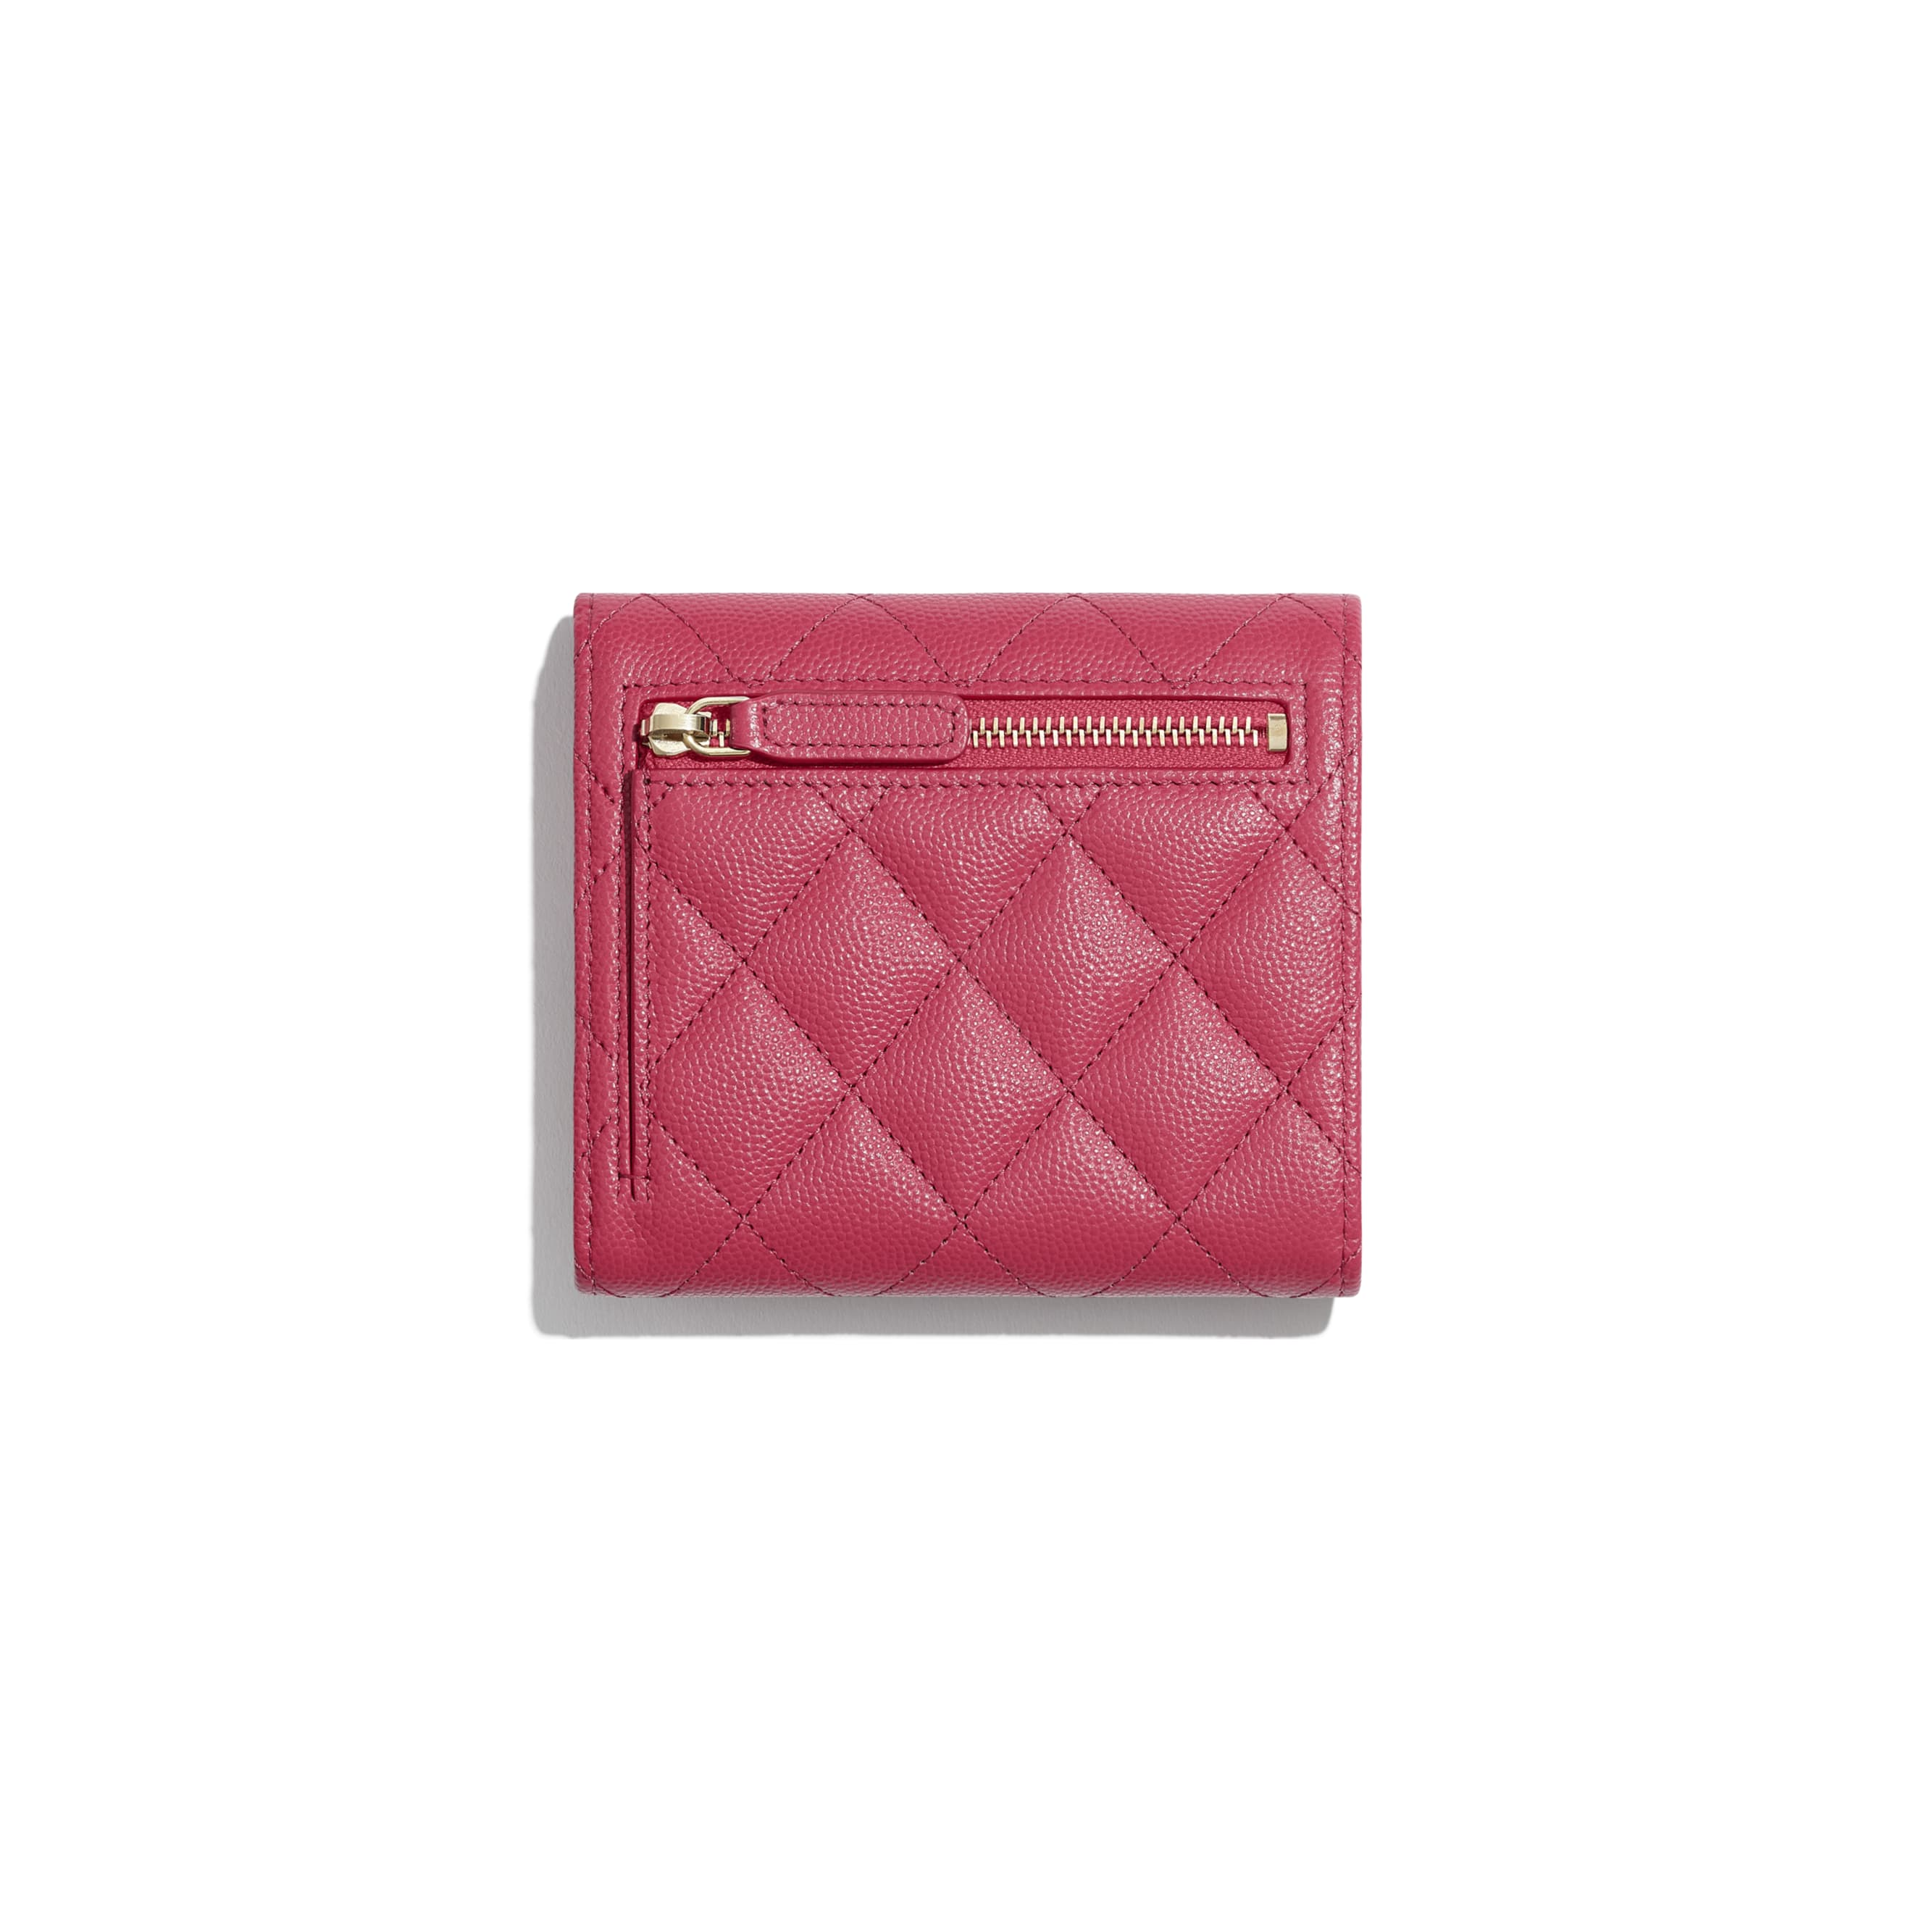 Classic Small Flap Wallet - Dark Pink - Grained Calfskin & Gold-Tone Metal - Alternative view - see standard sized version